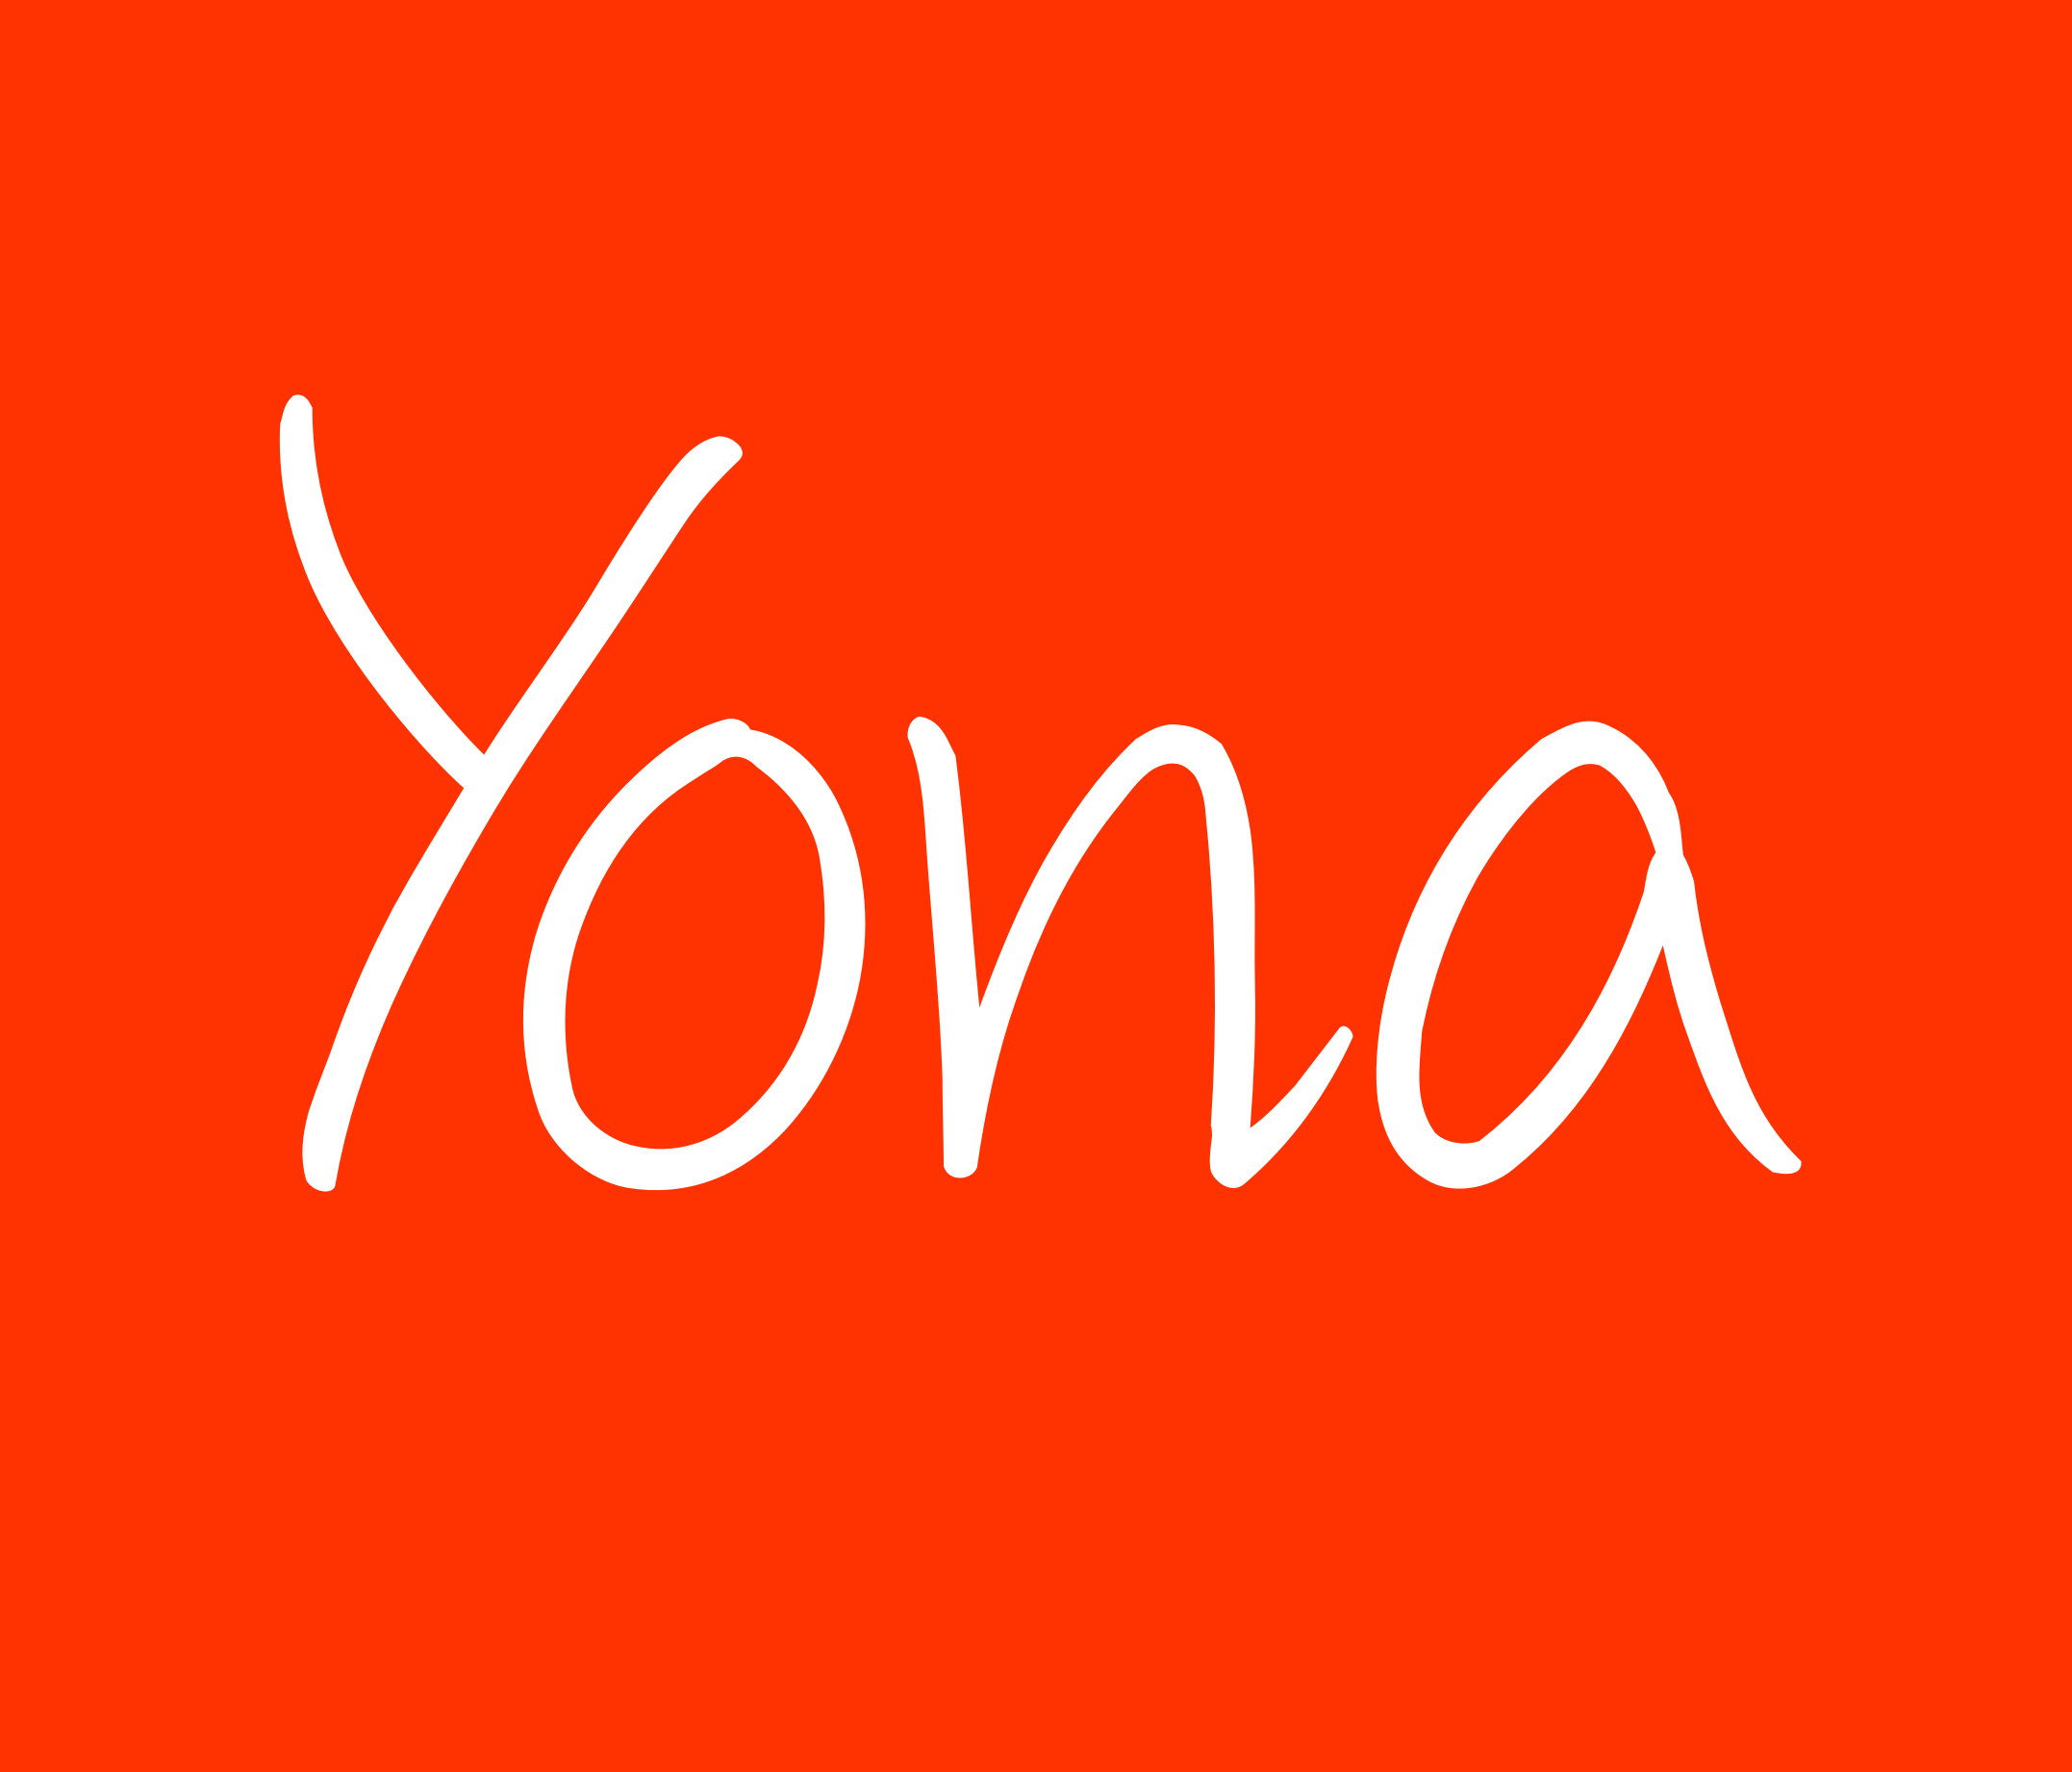 yona-projects/yona